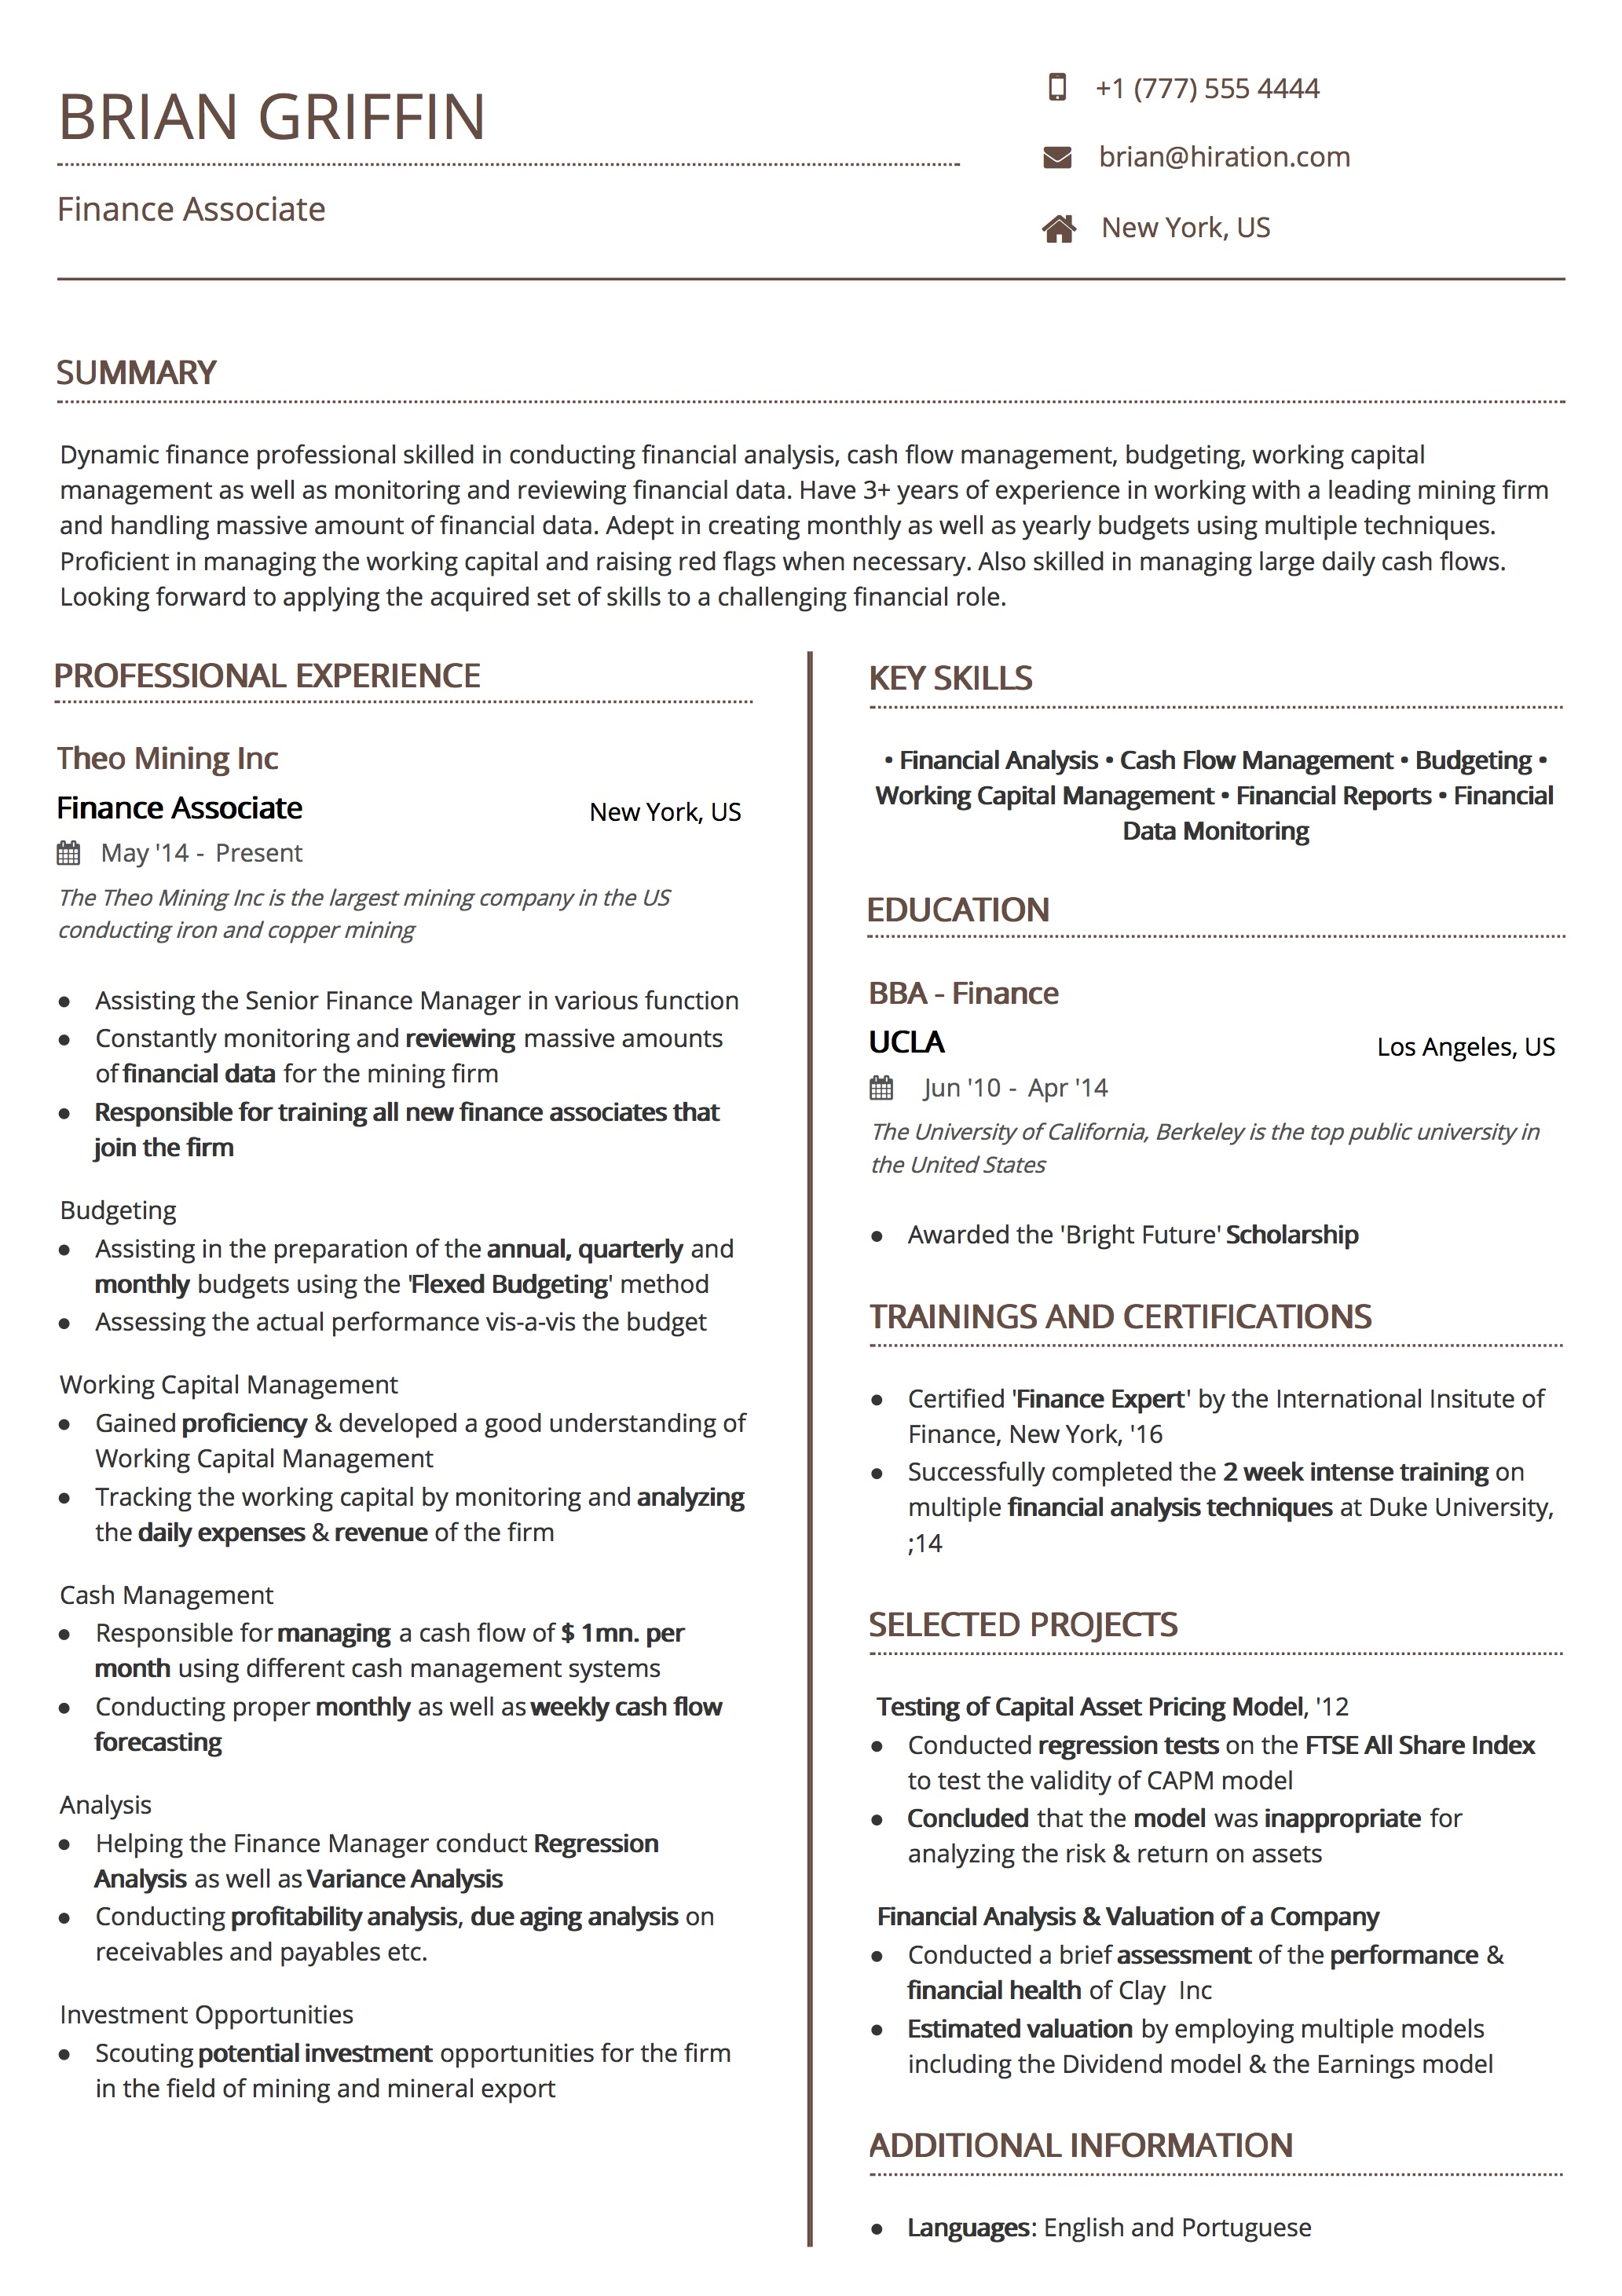 resume template uniform brown by hiration. Black Bedroom Furniture Sets. Home Design Ideas